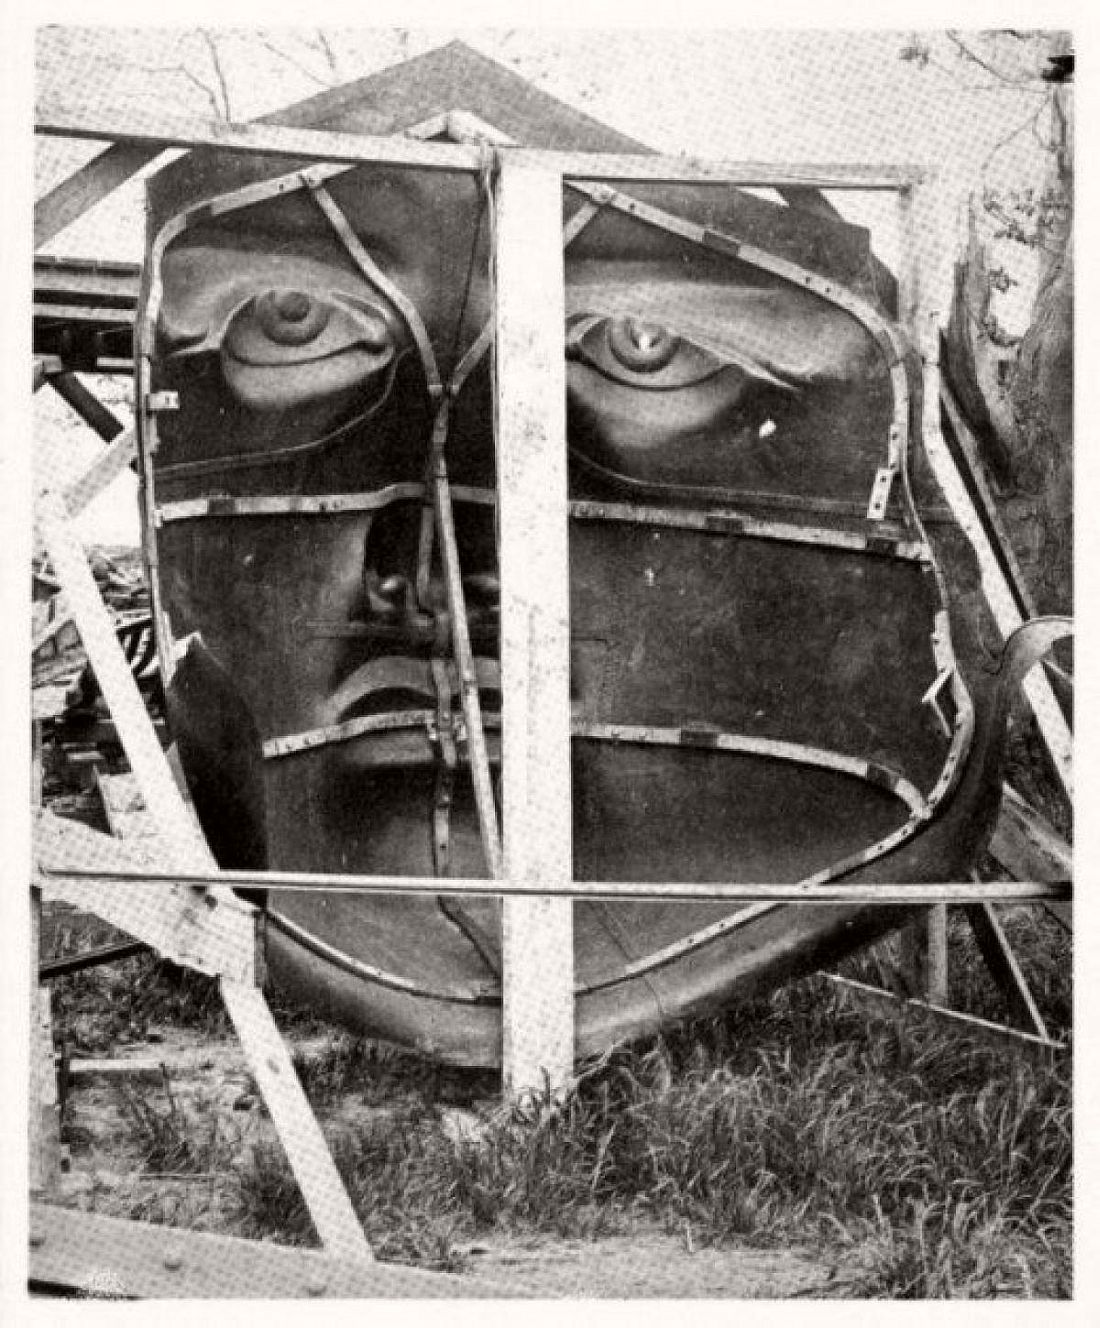 vintage-images-of-statue-of-liberty-under-construction-1880s-101